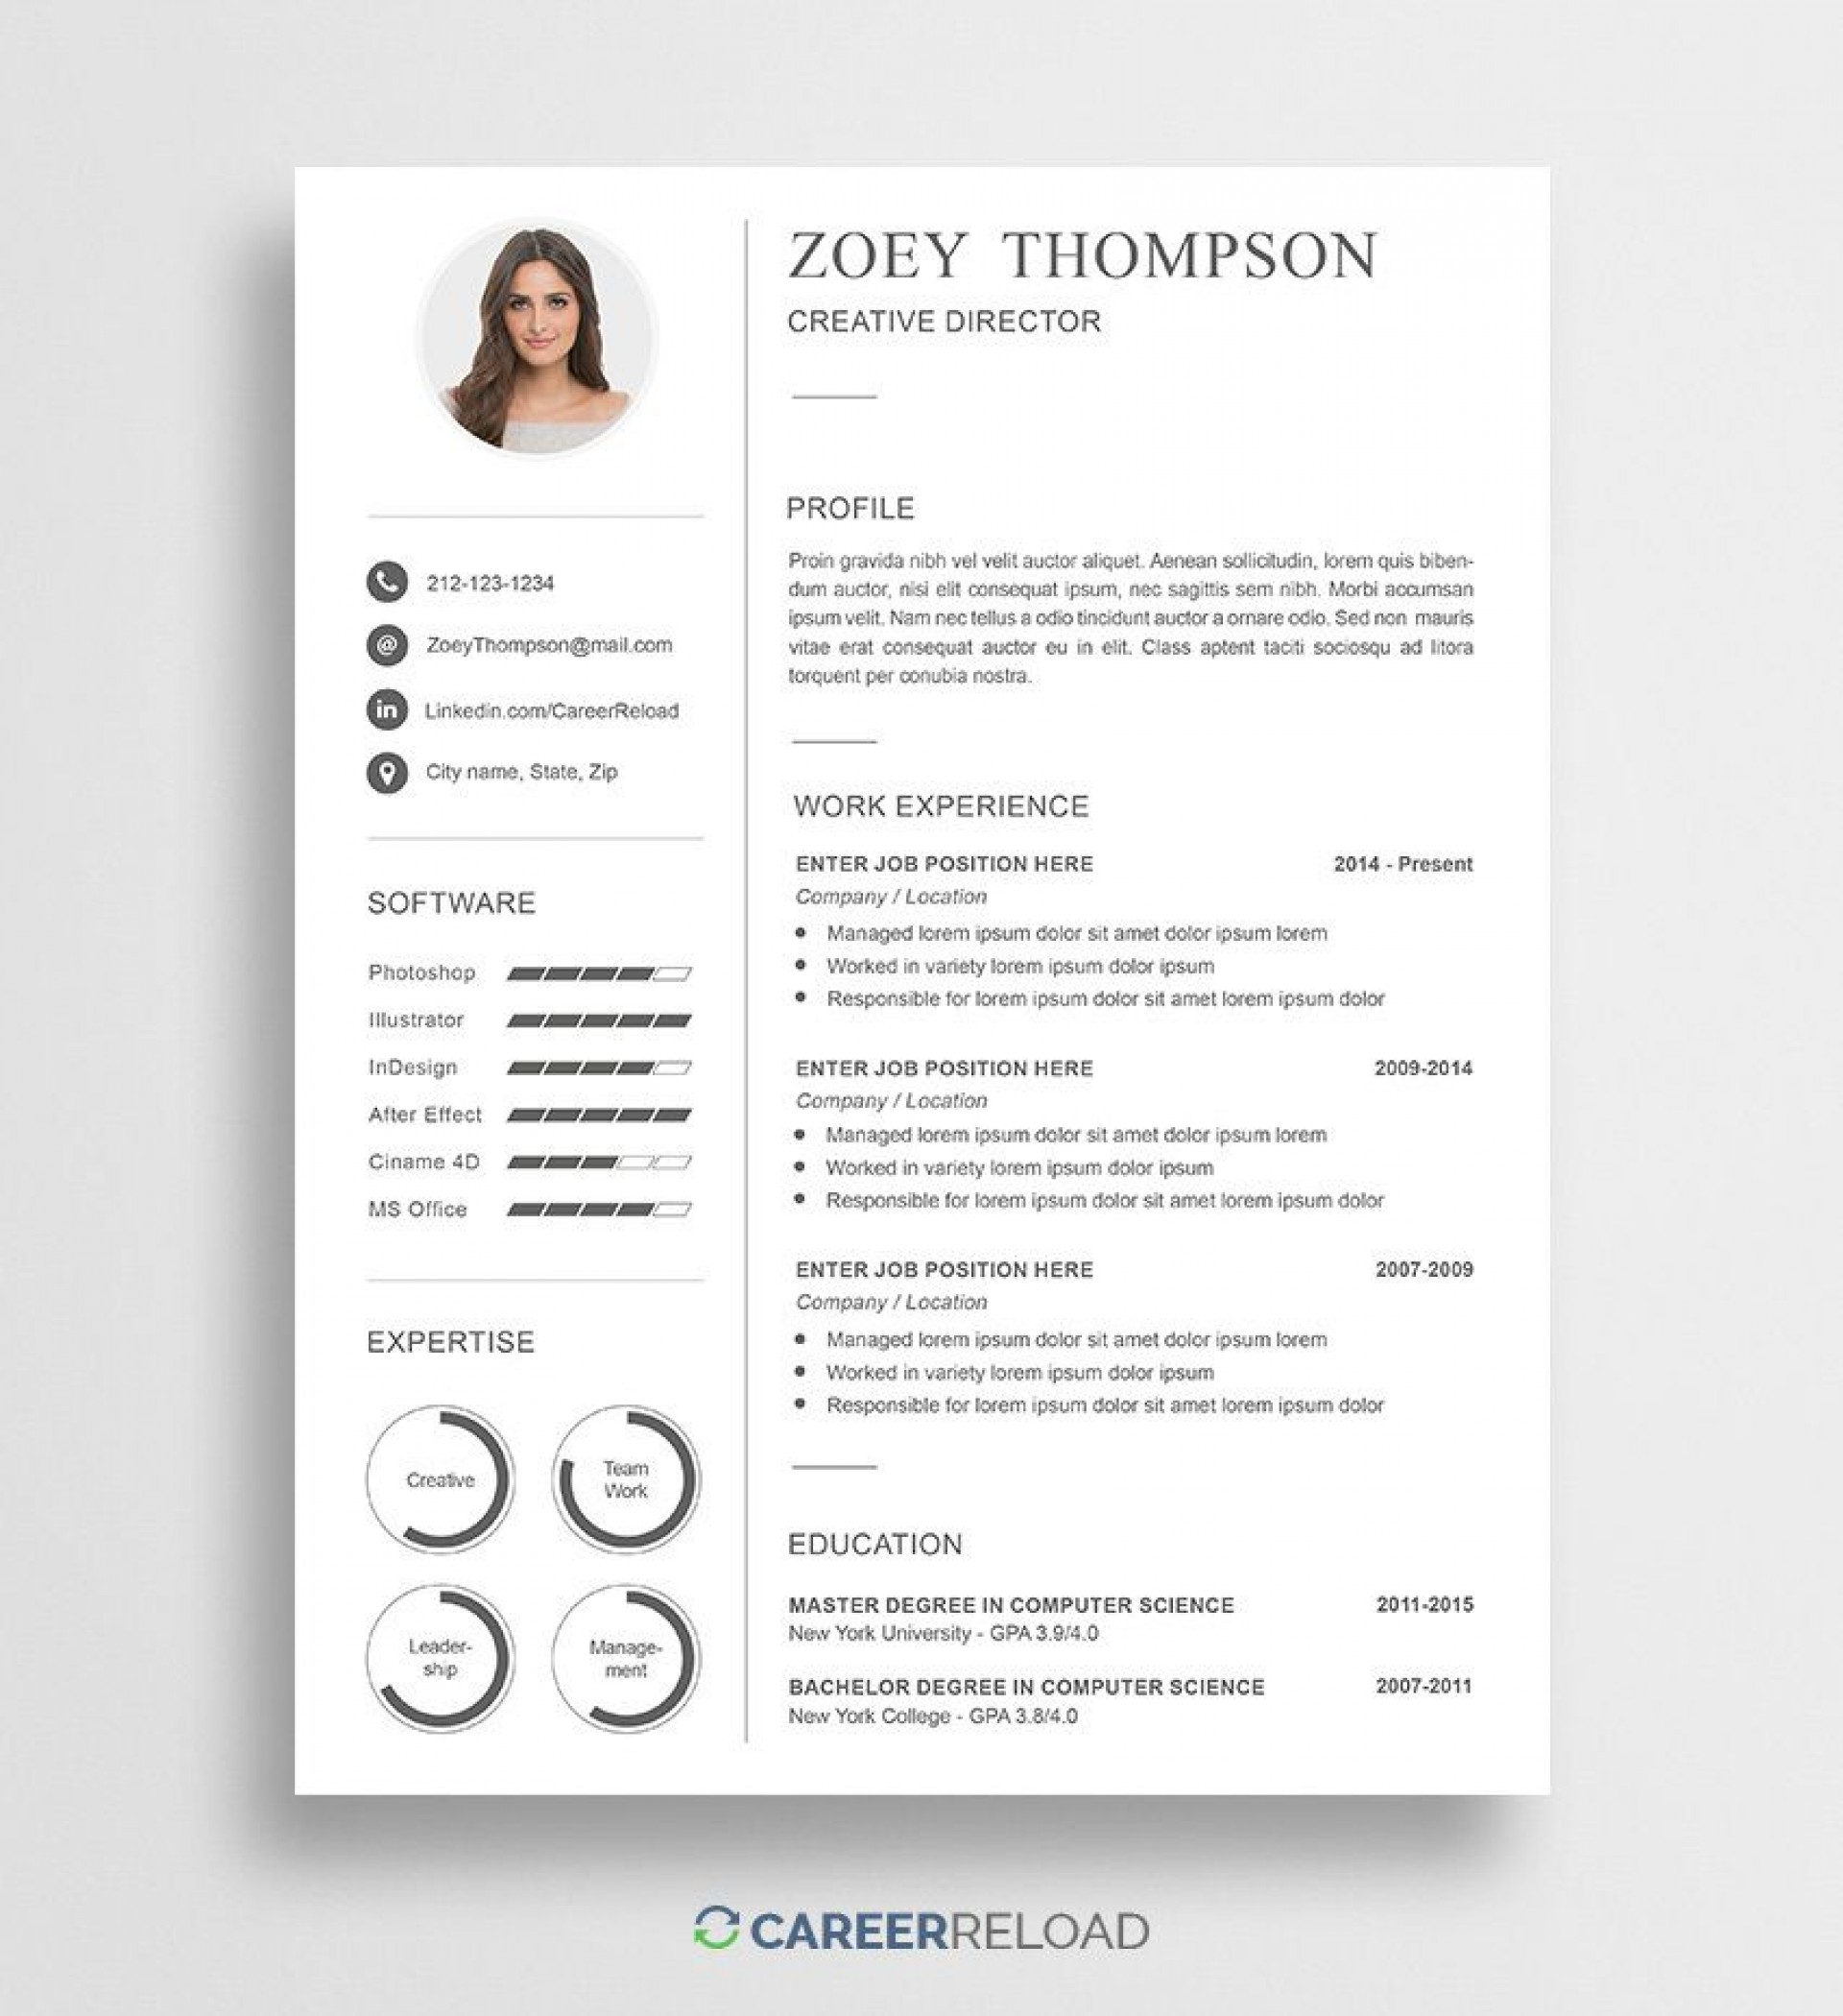 009 Unforgettable Make A Resume Template Free High Resolution  Create Your Own How To Write1920